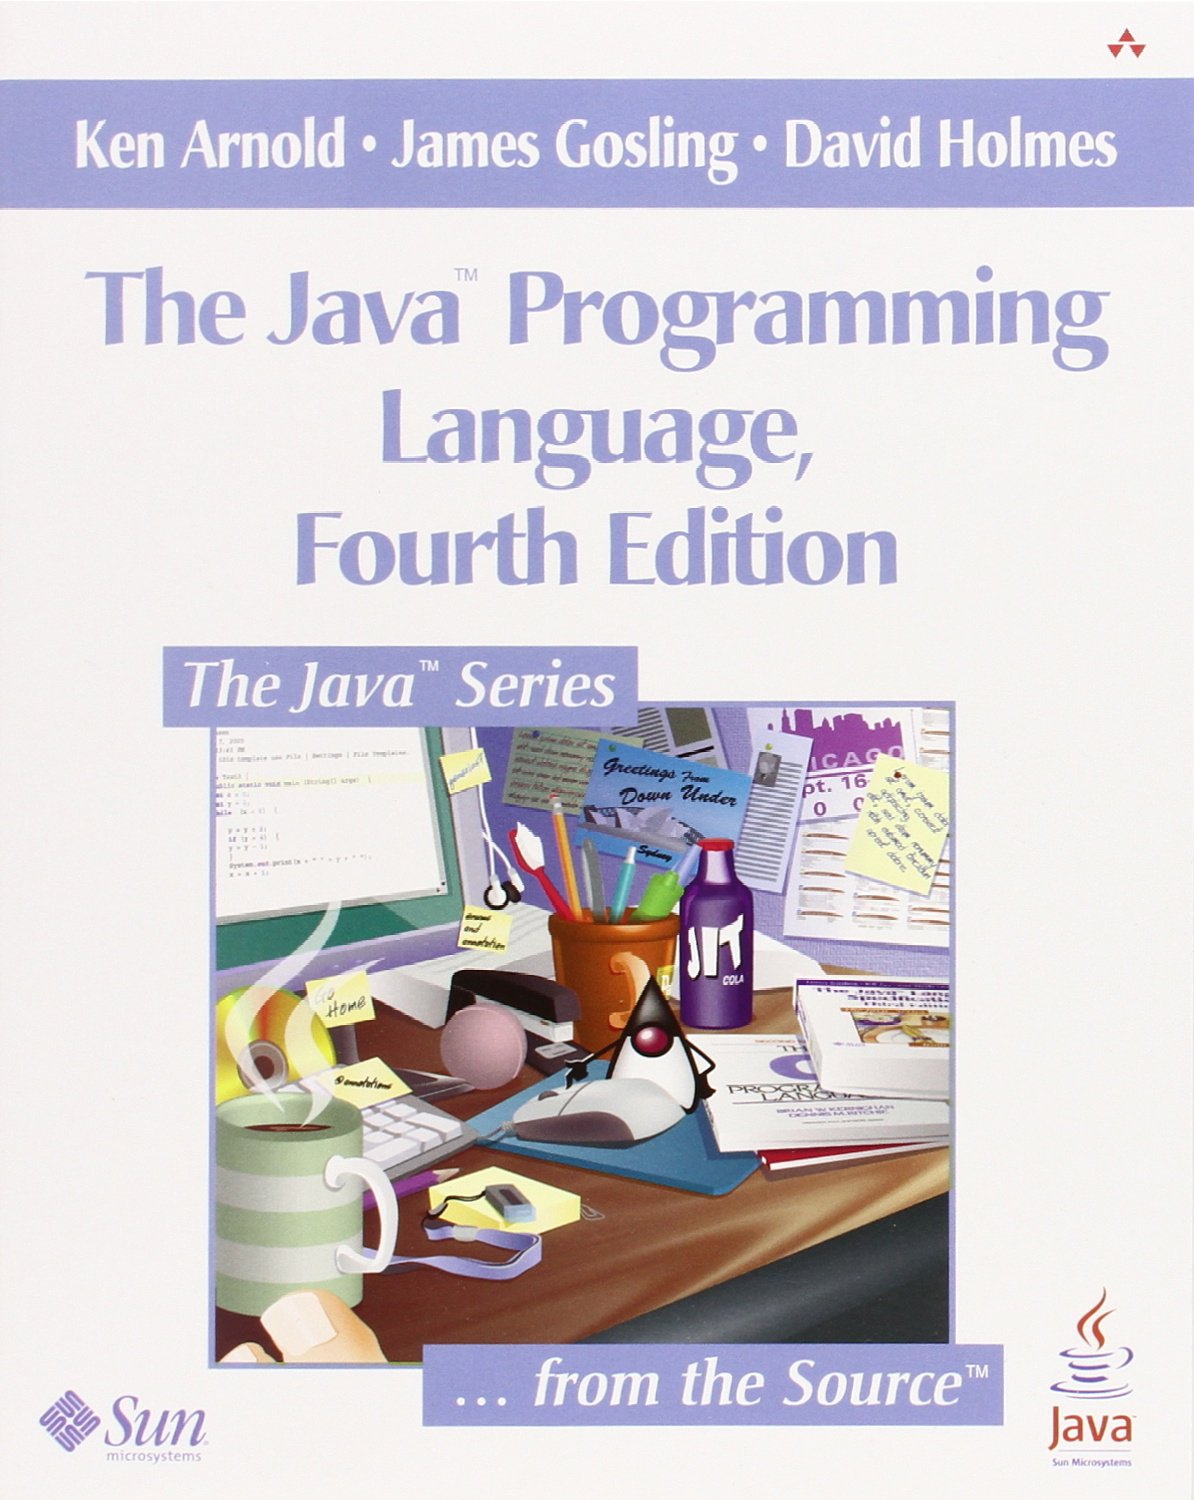 The Java Programming Language, 4th Edition by Addison-Wesley Professional